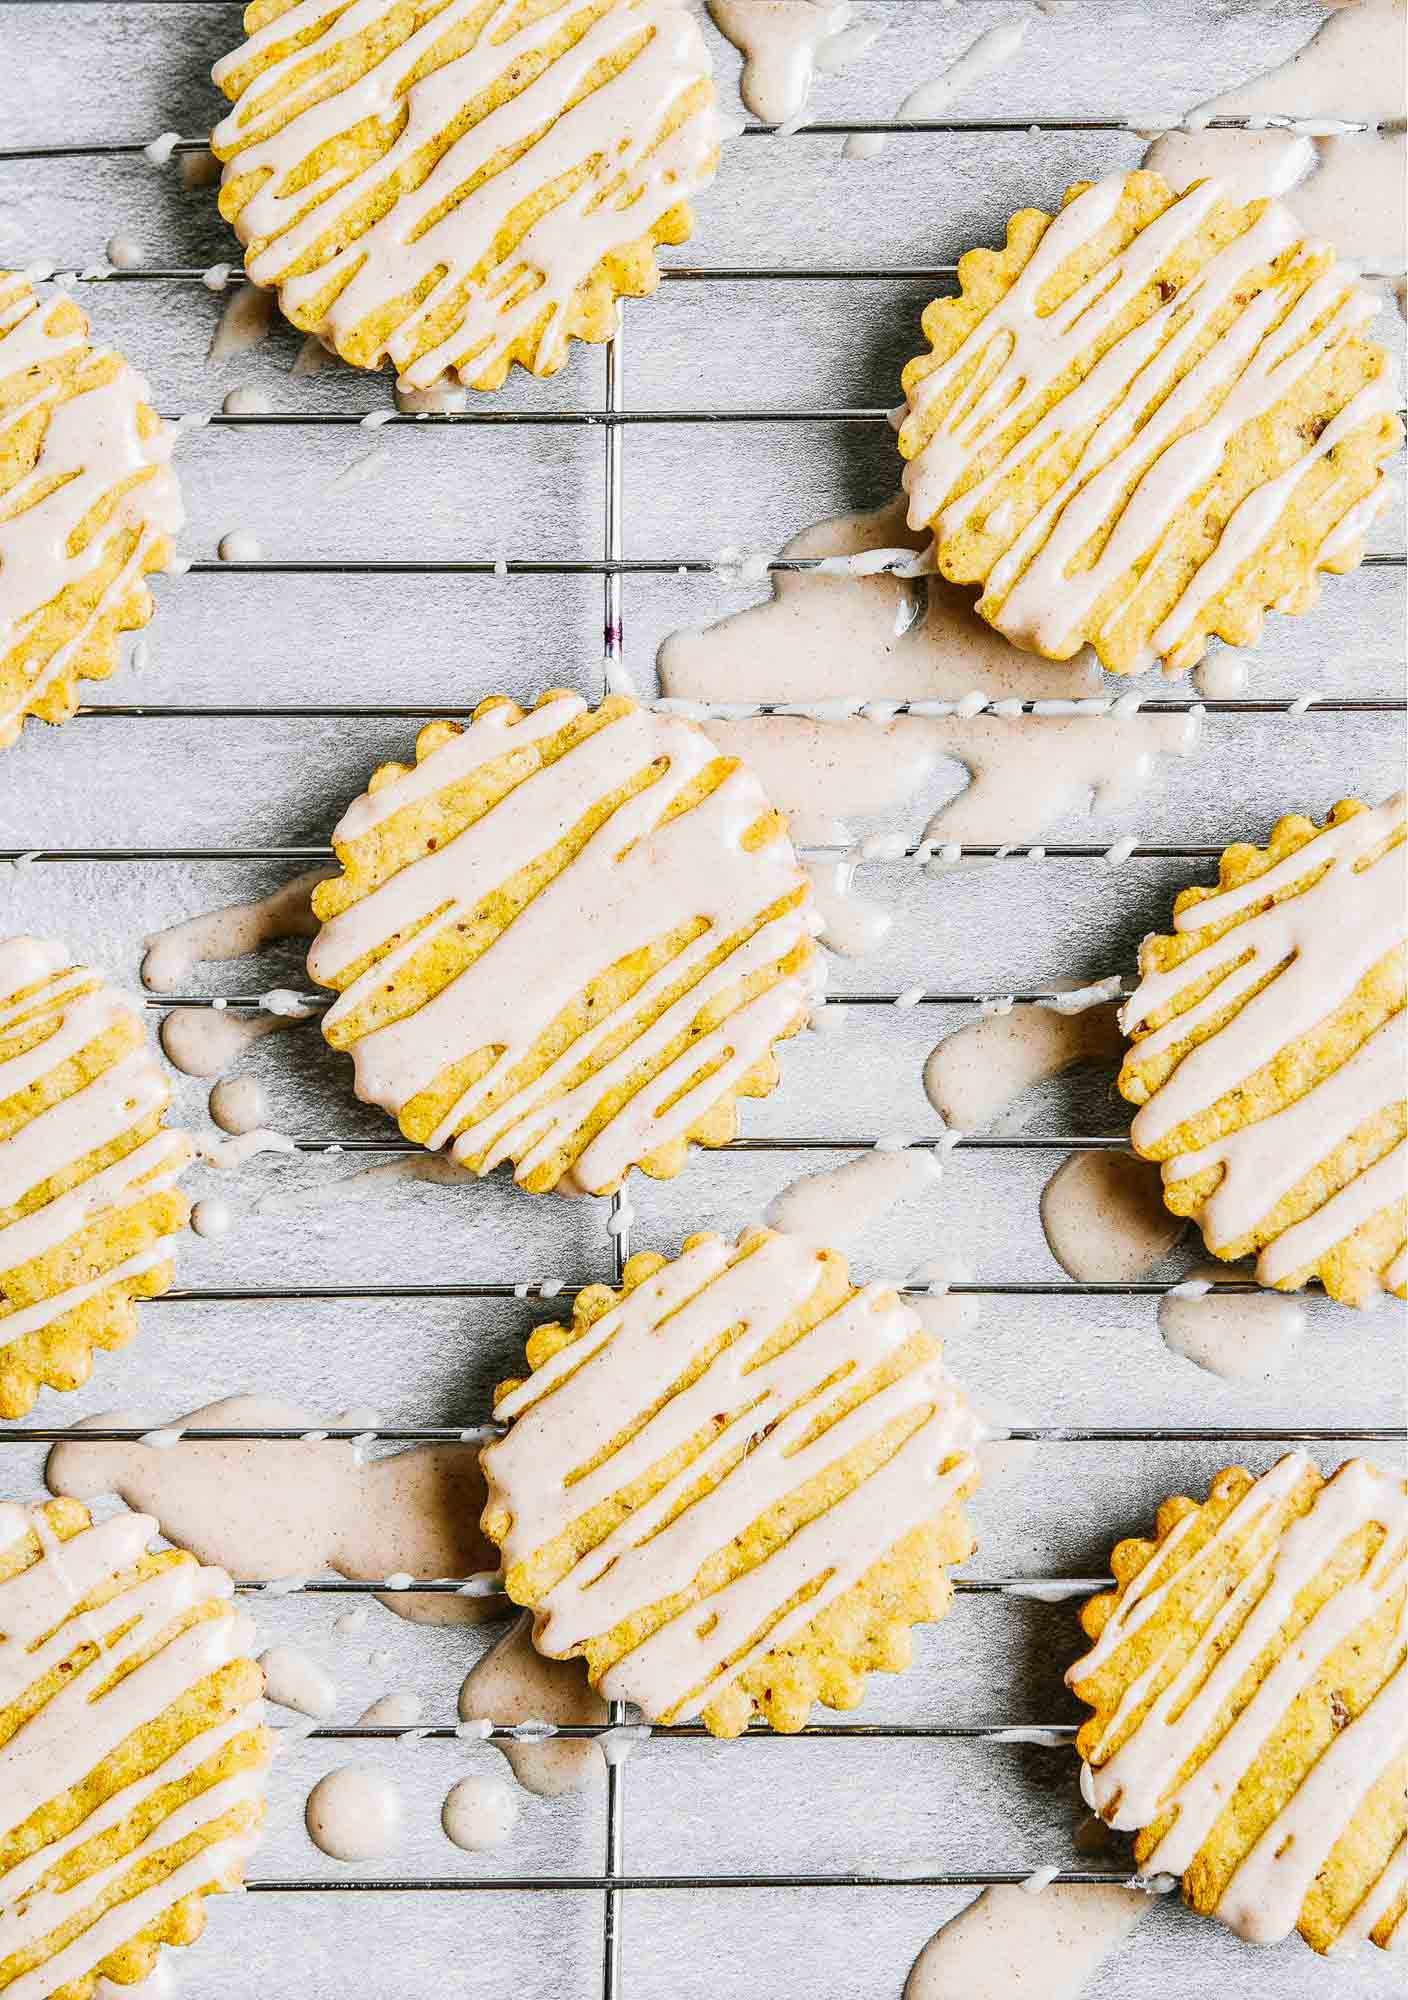 Iced pumpkin cookies set on a wire rack on a concrete table.